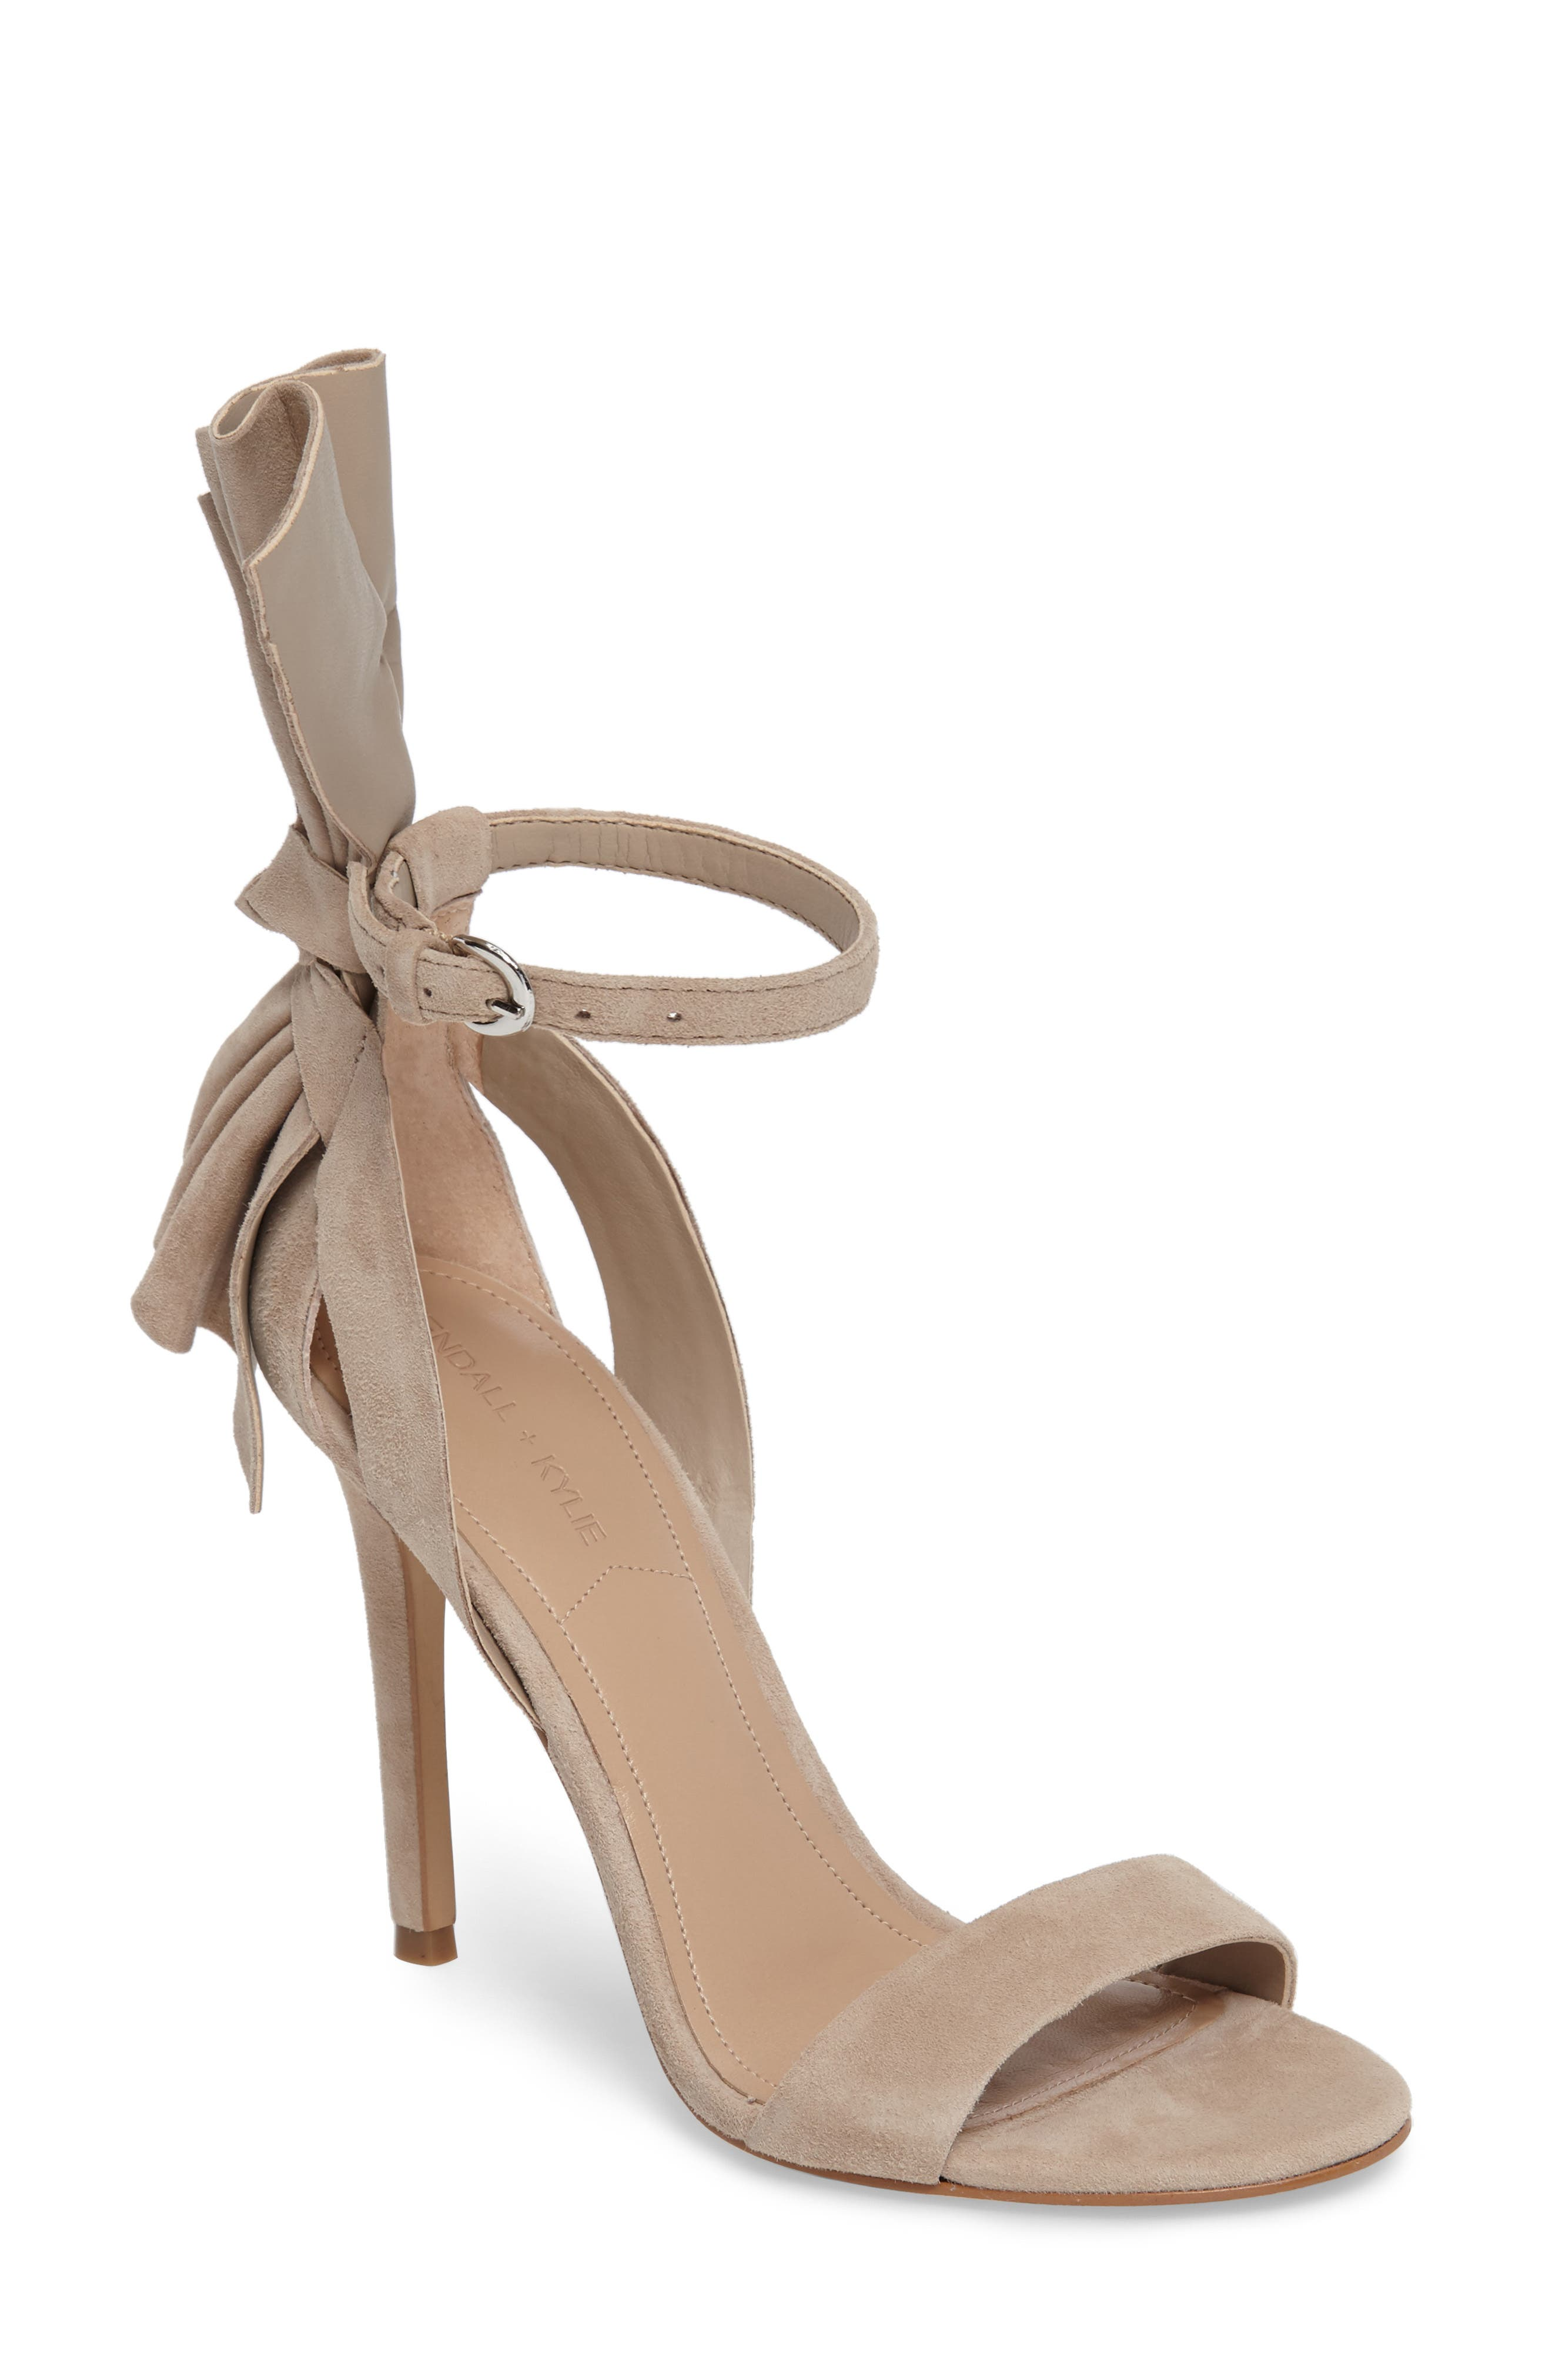 Main Image - KENDALL + KYLIE Eve Ankle Strap Sandal (Women)